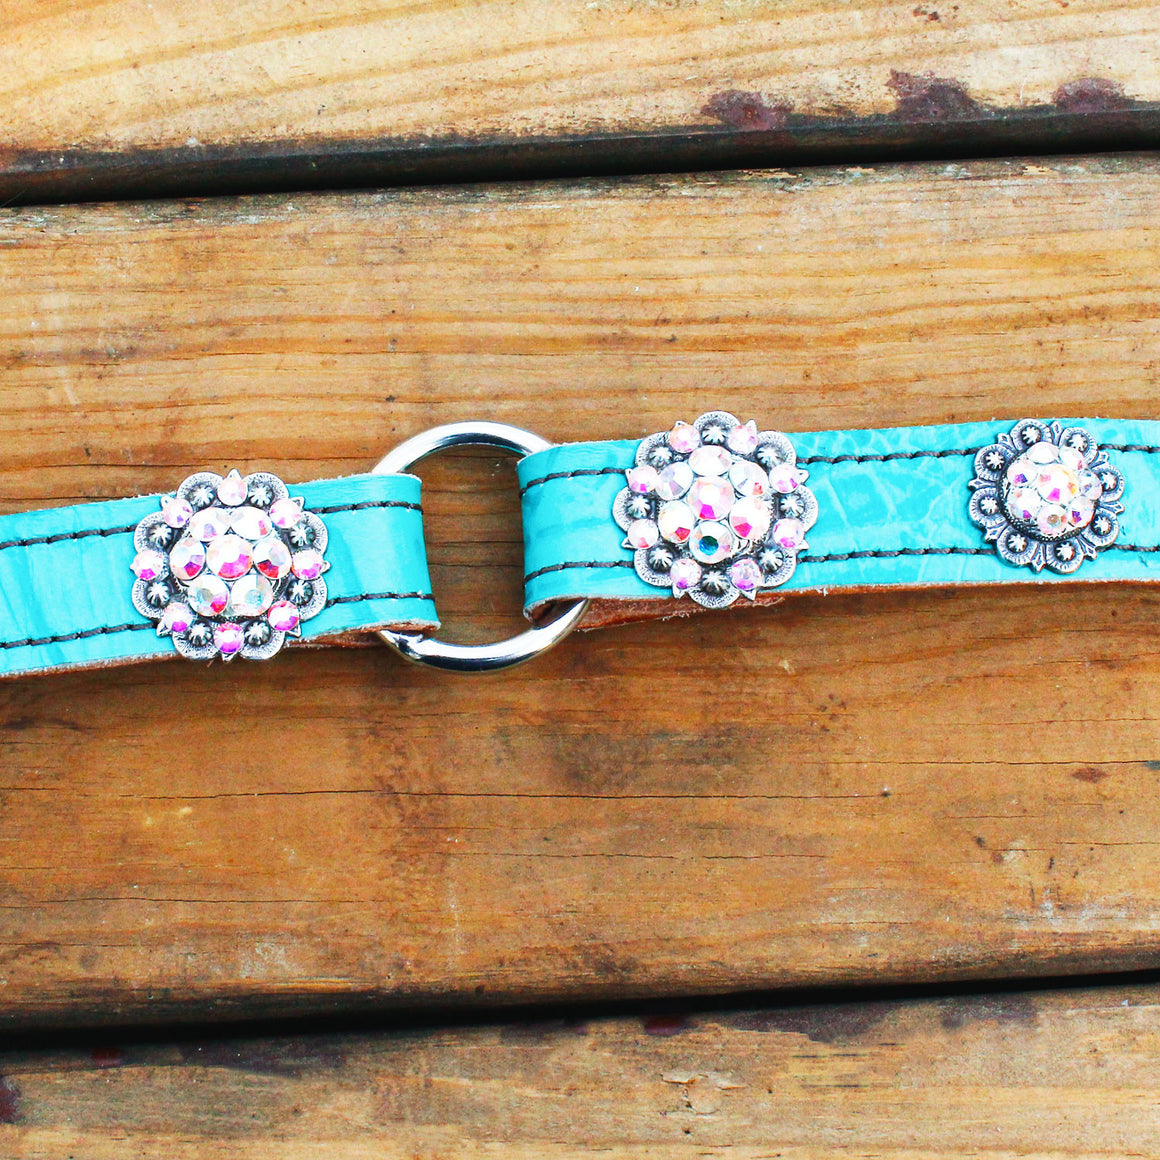 Teal Gator 1 Inch Center Ring Dog Collar with AB Crystal Rhinestone Conchos